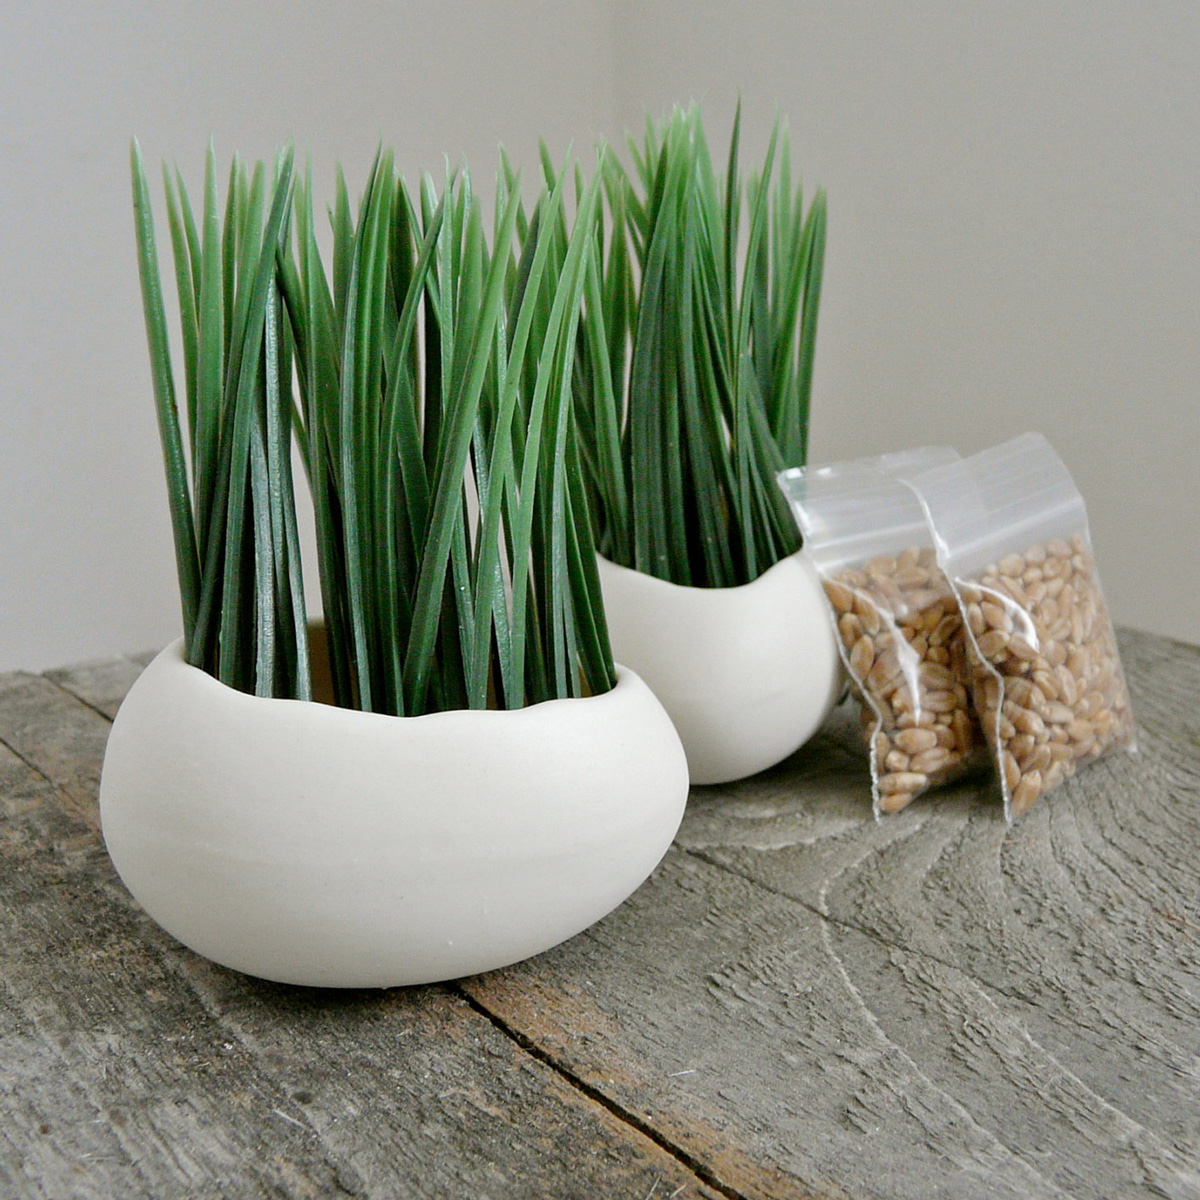 Wheatgrass Egg Planters The Green Head